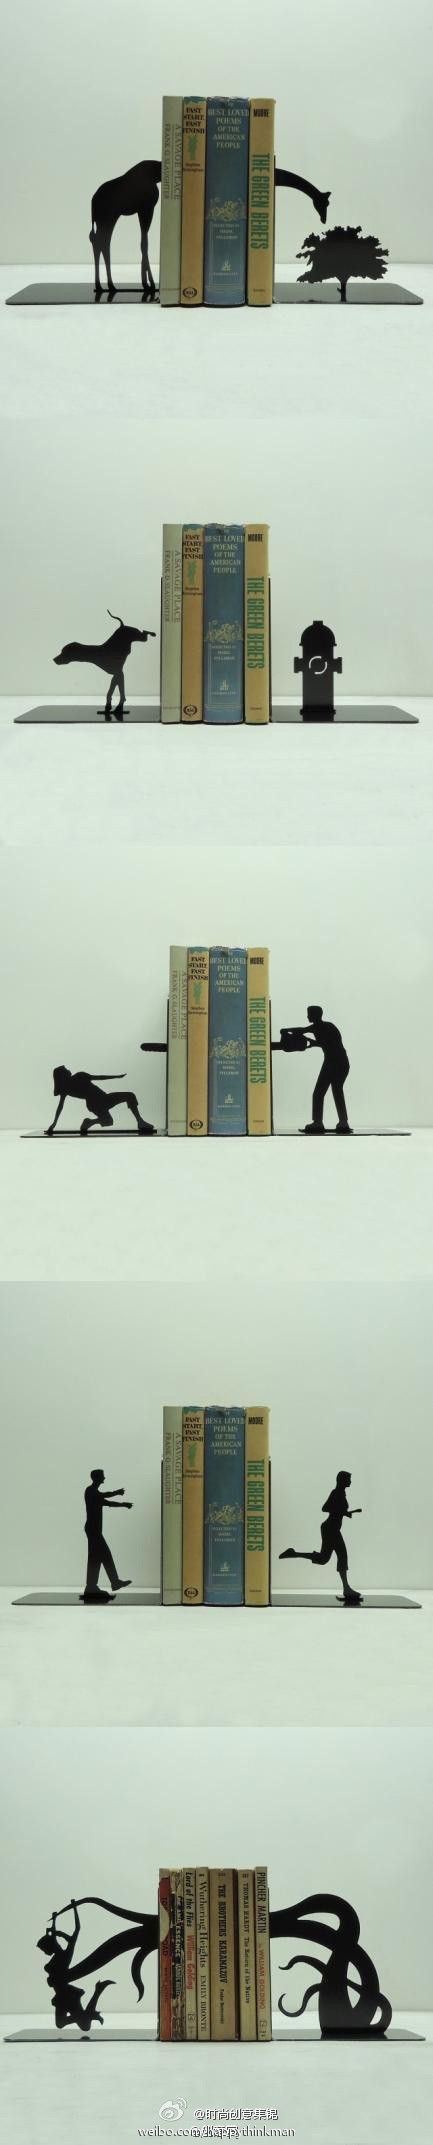 Bookends (okay, stretching my category, but still cool.) Top one - for travel or zoology books. Next - animal stories or pet training. Third, horror or mystery.  Fourth, exercise or relationships.